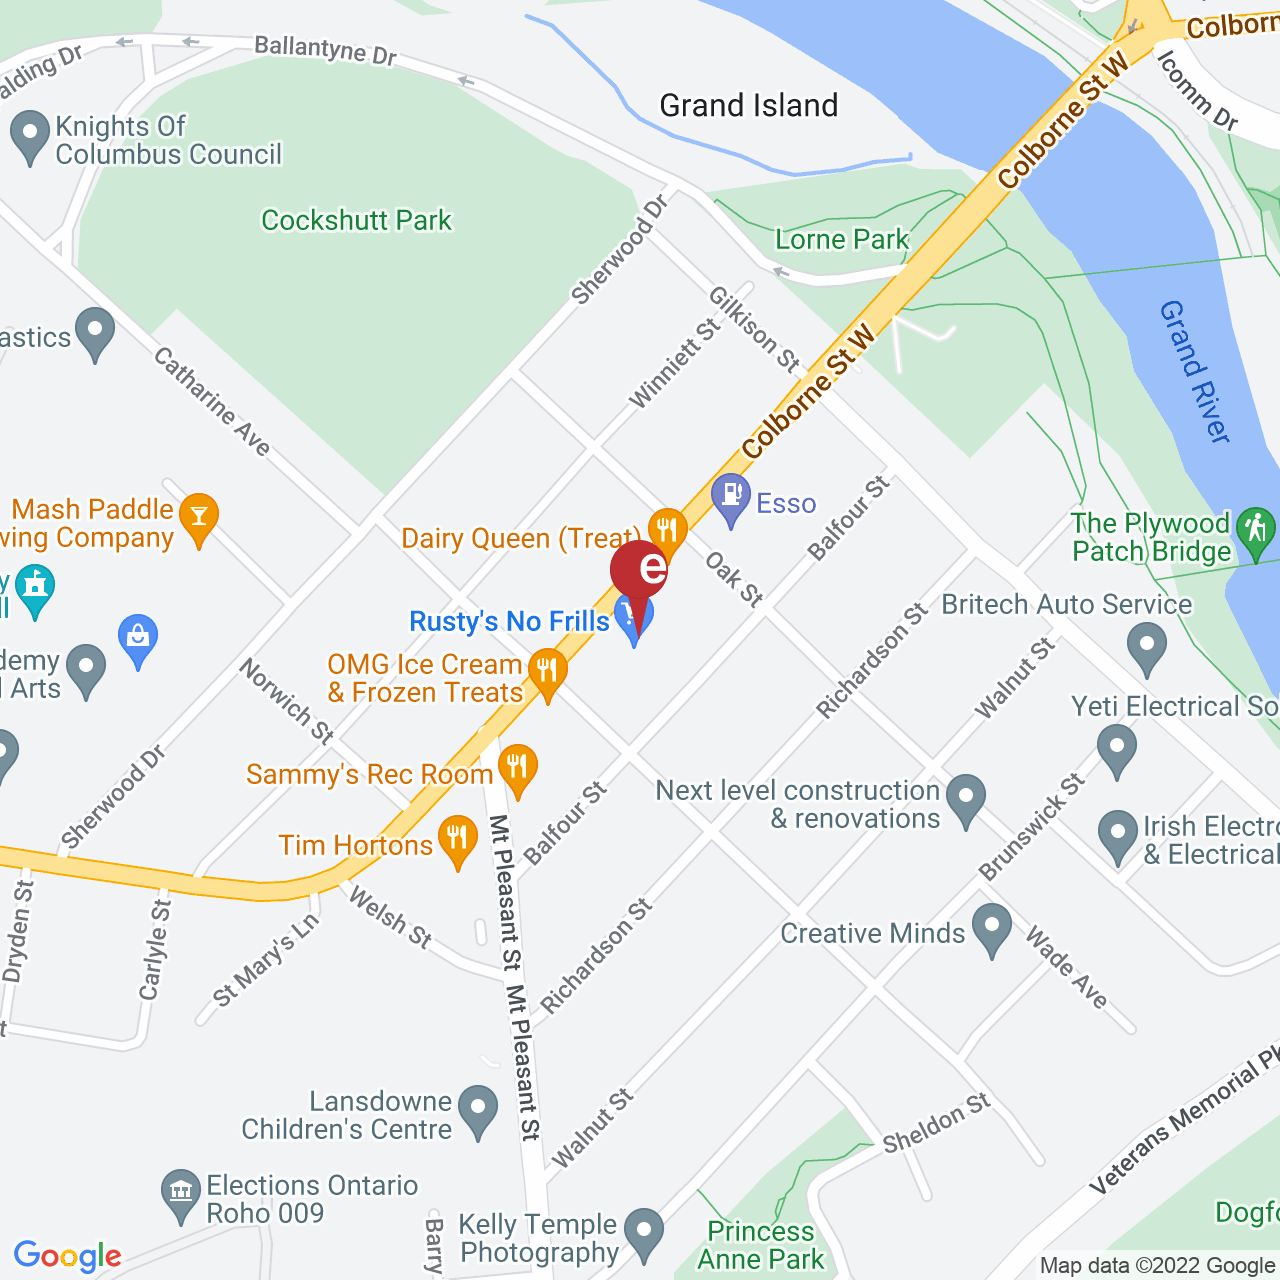 Street map for Cannabis Supply Co., 164 Colborne St W Unit 5B, Brantford ON